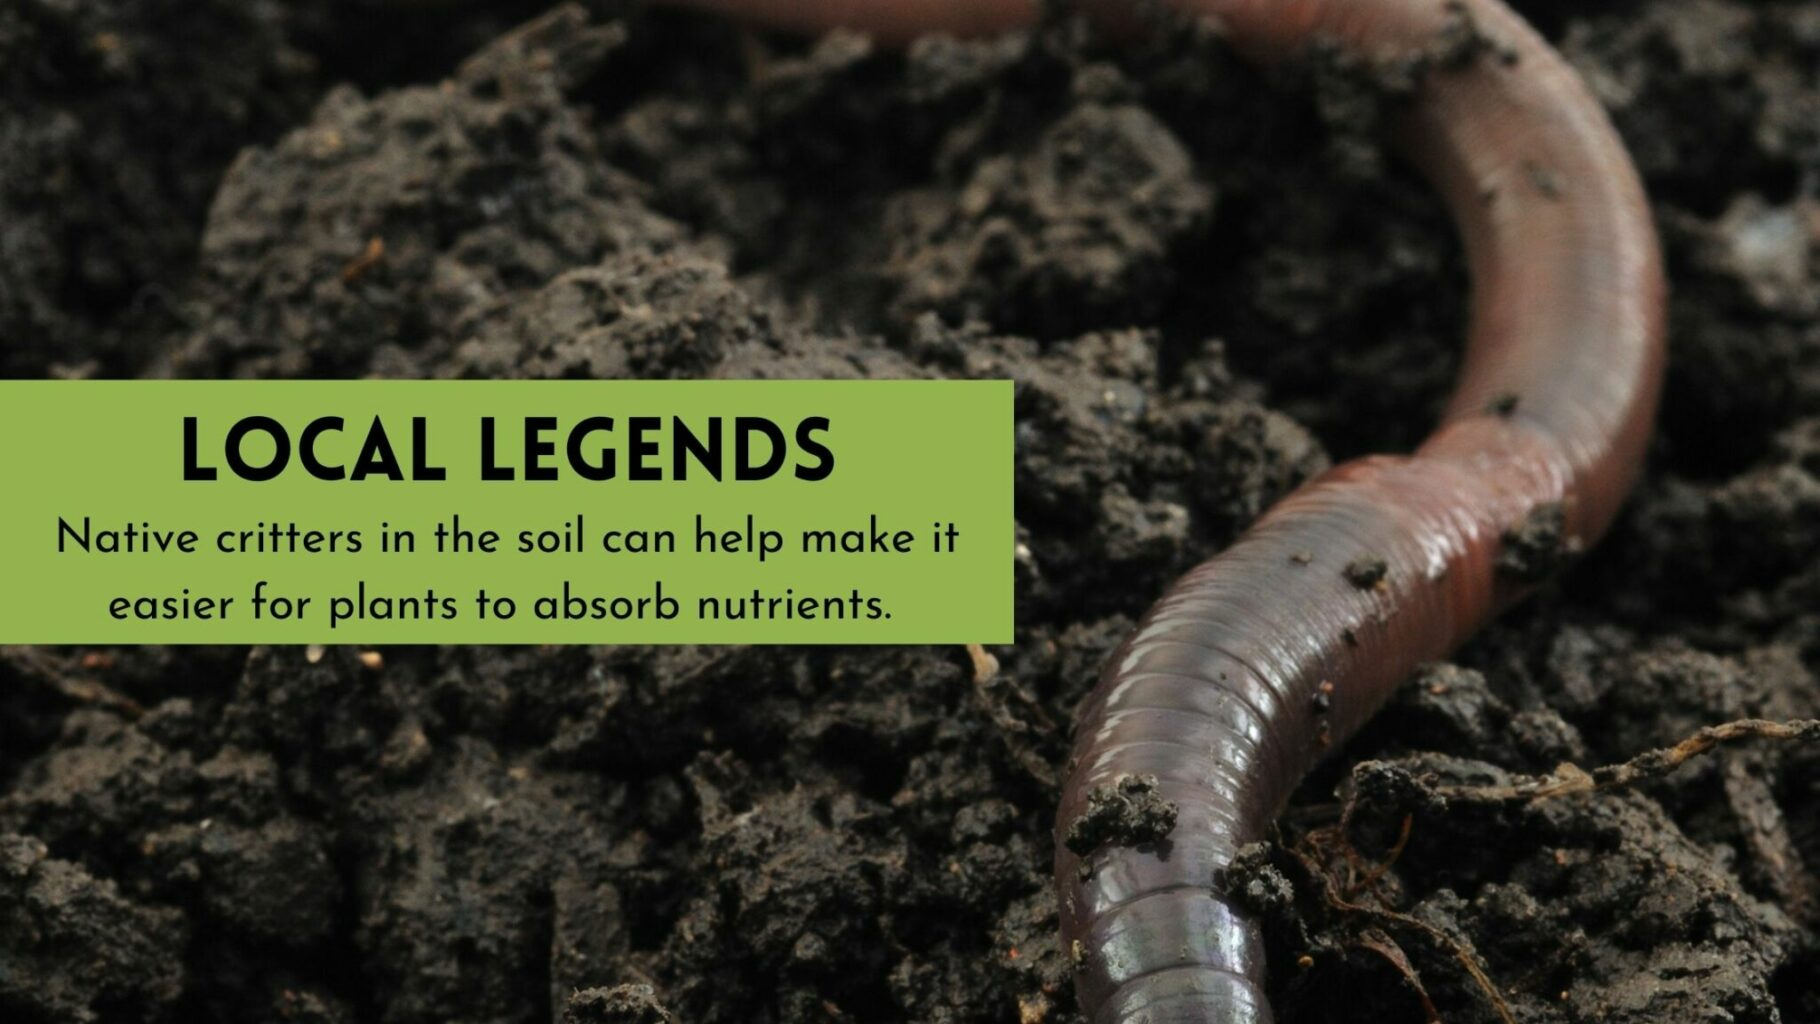 worm calling through healthy soil helping feed plants